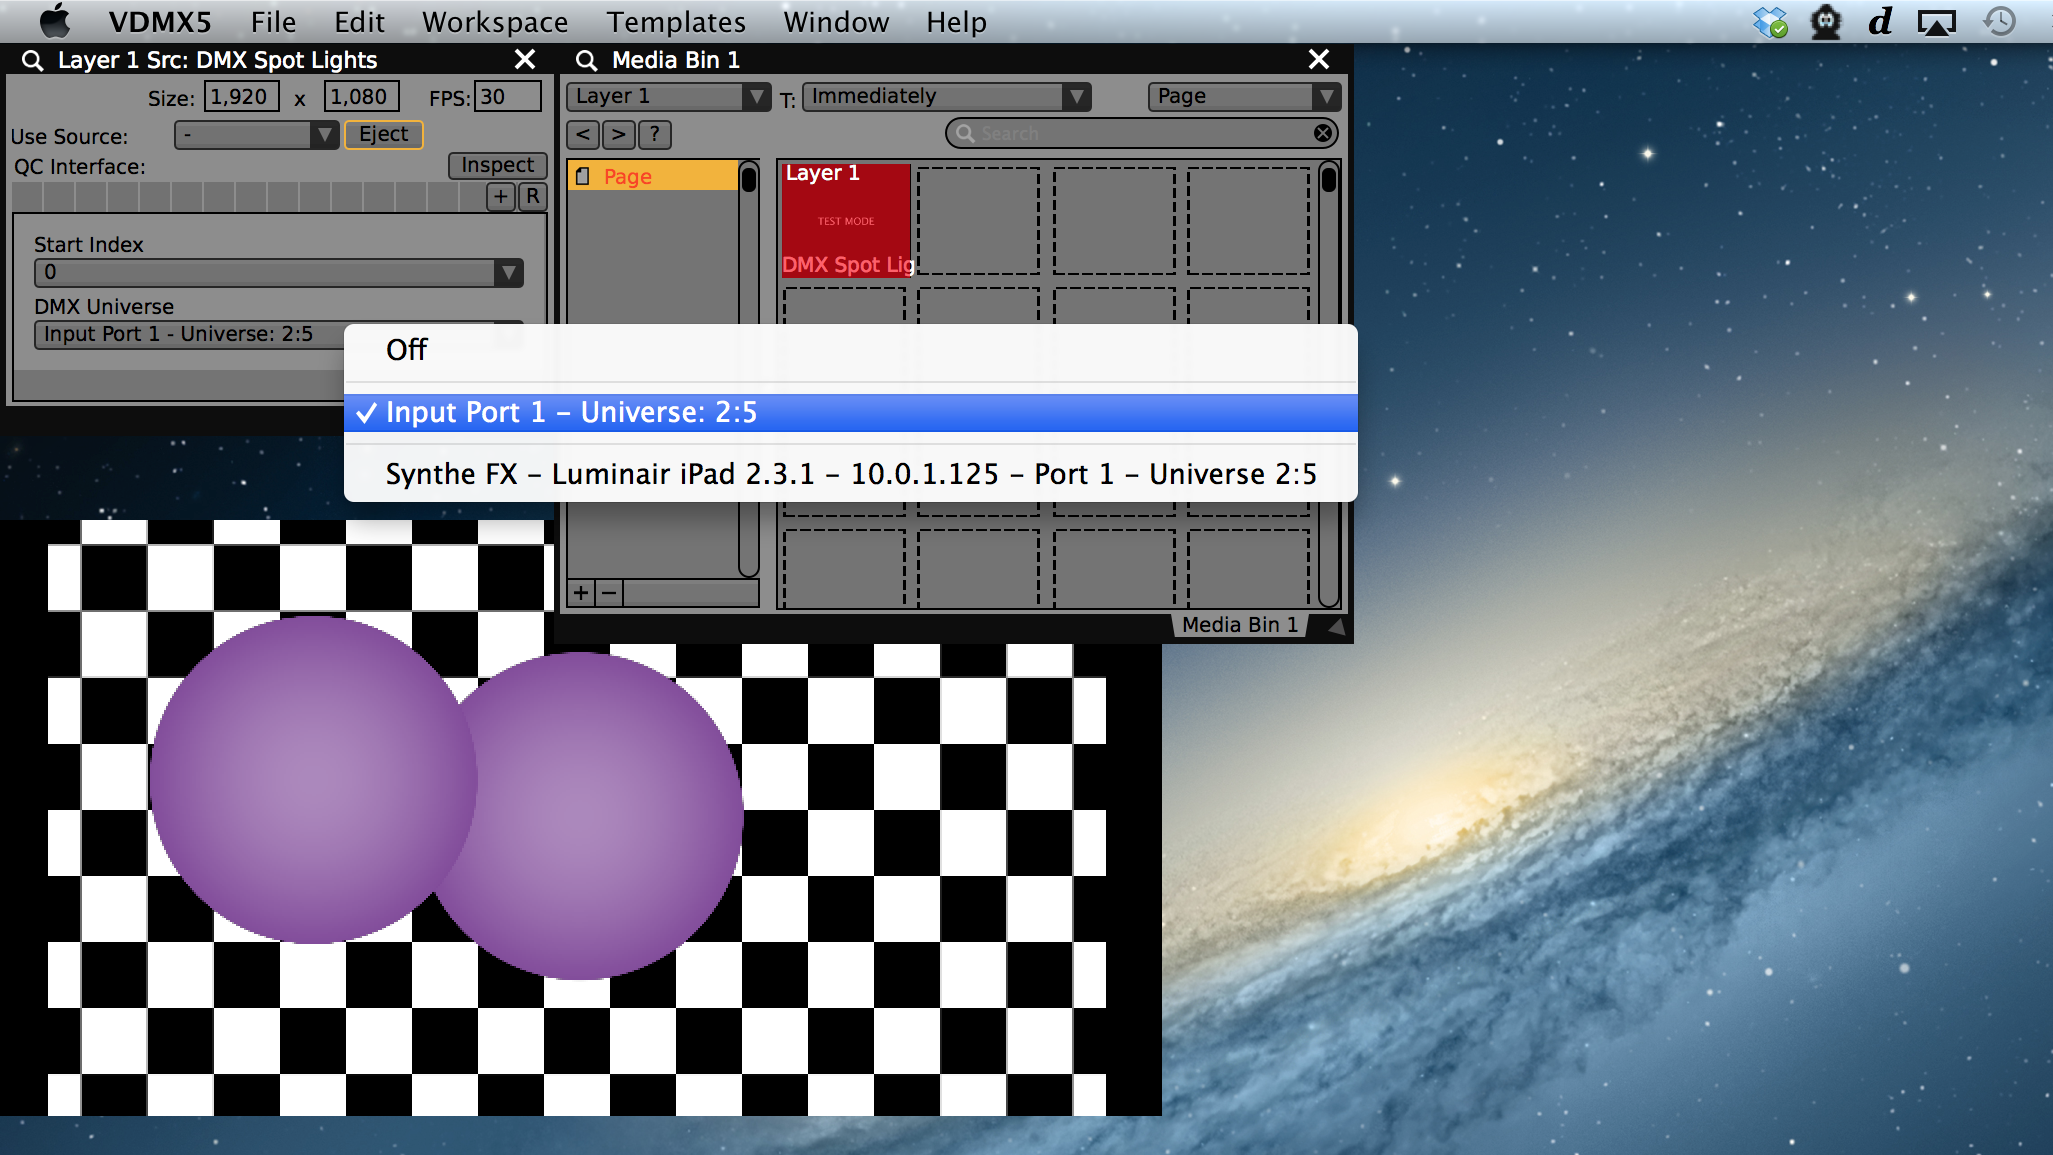 Pop-up menu for selecting an ArtNet universe to pass into the composition from the VDMX source controls.